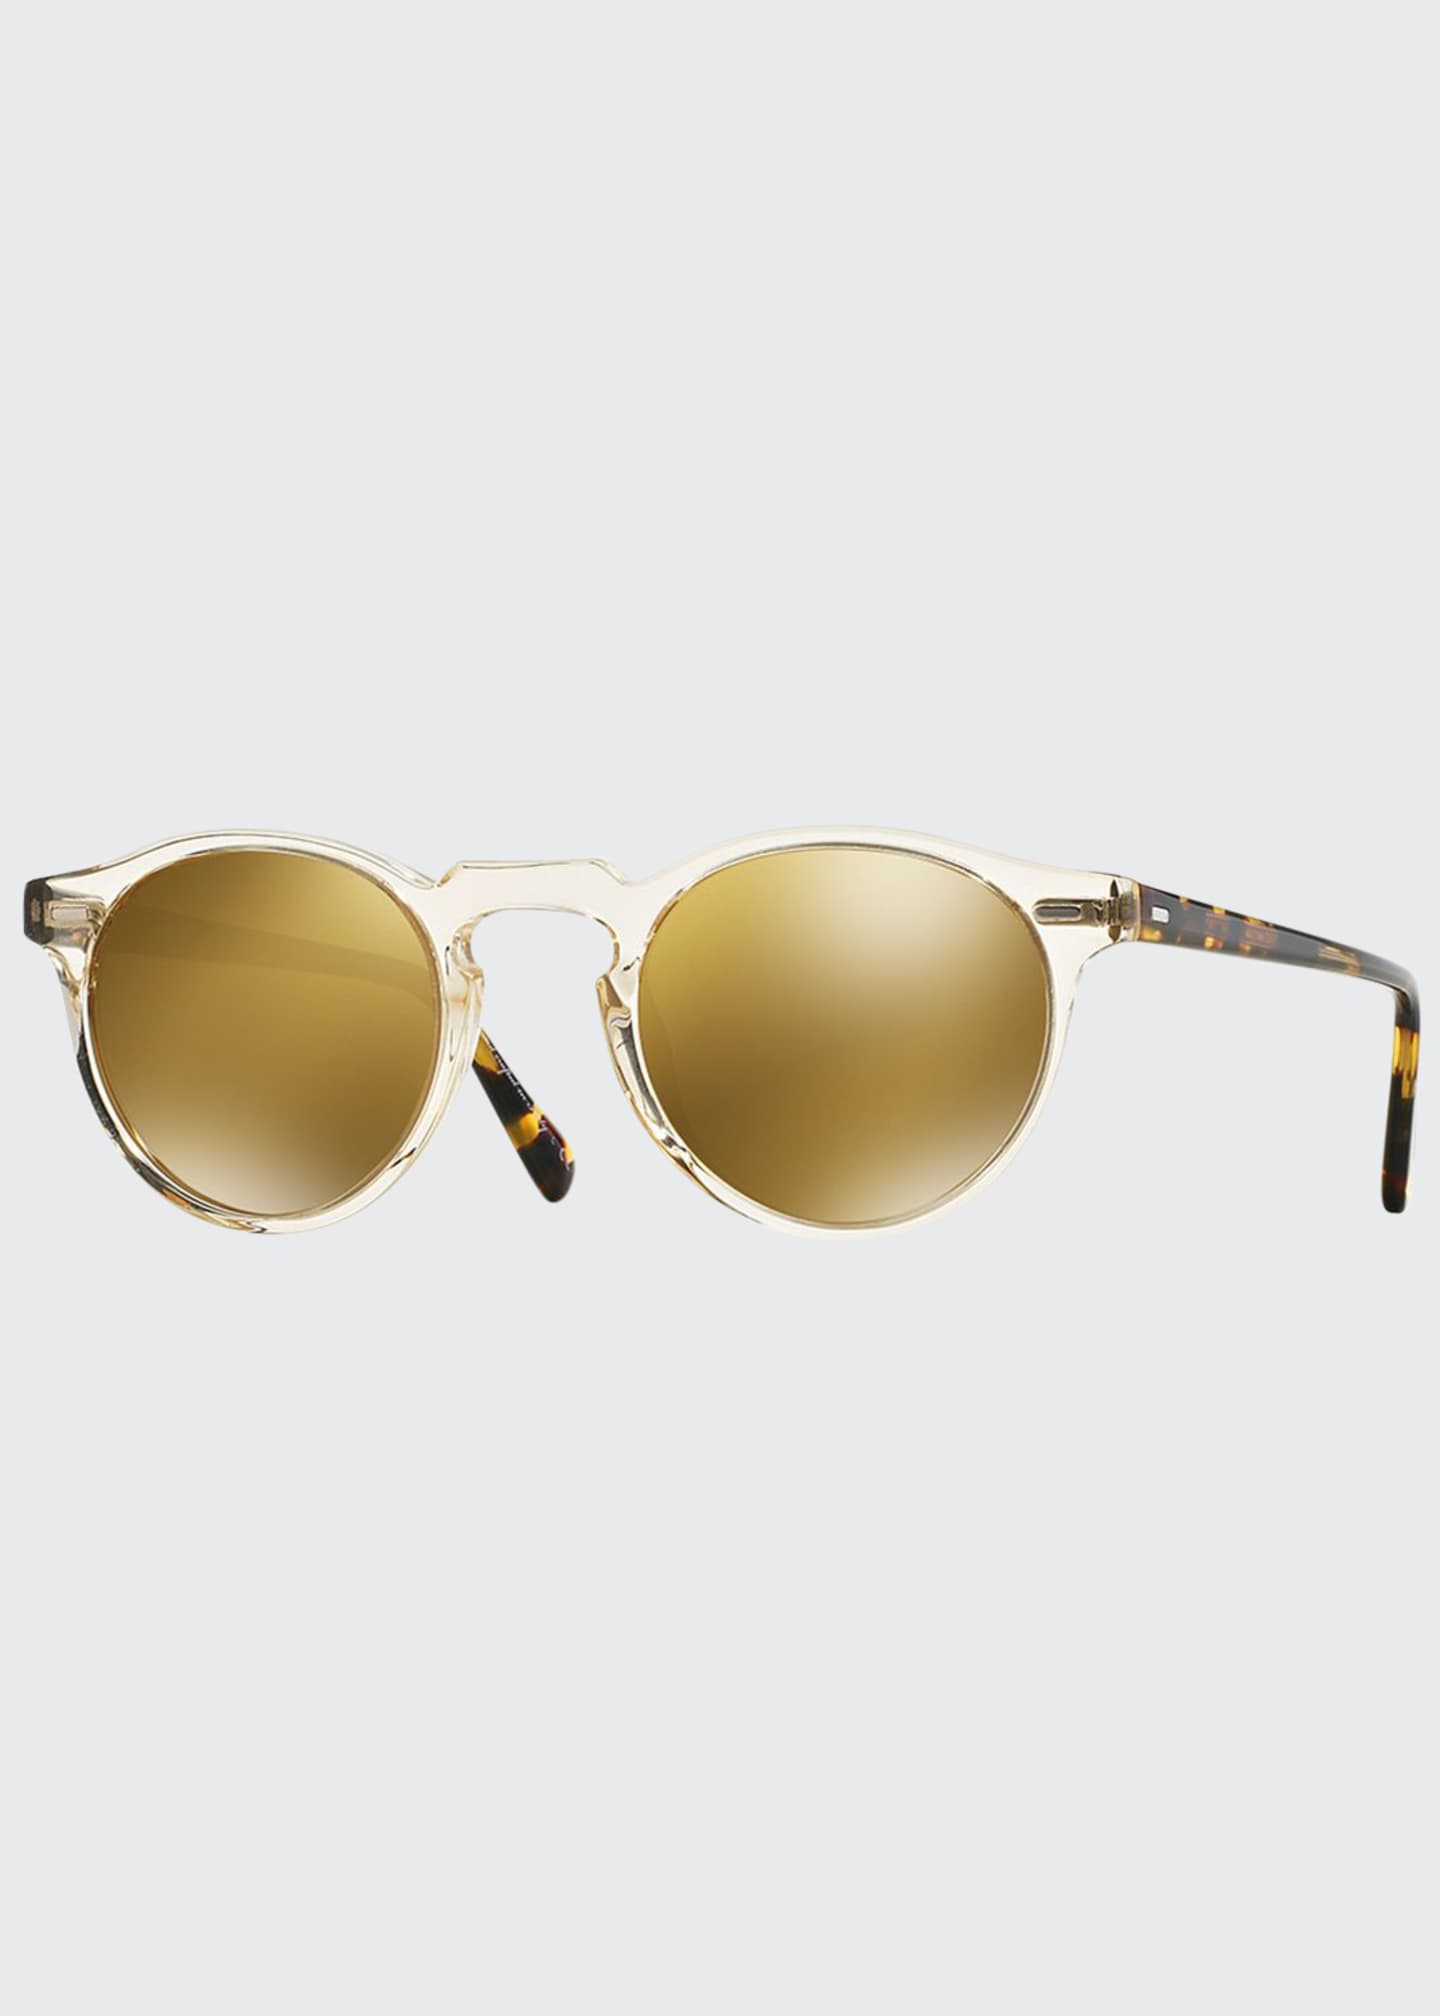 Image 1 of 1: Gregory Peck 47 Round Sunglasses, Yellow